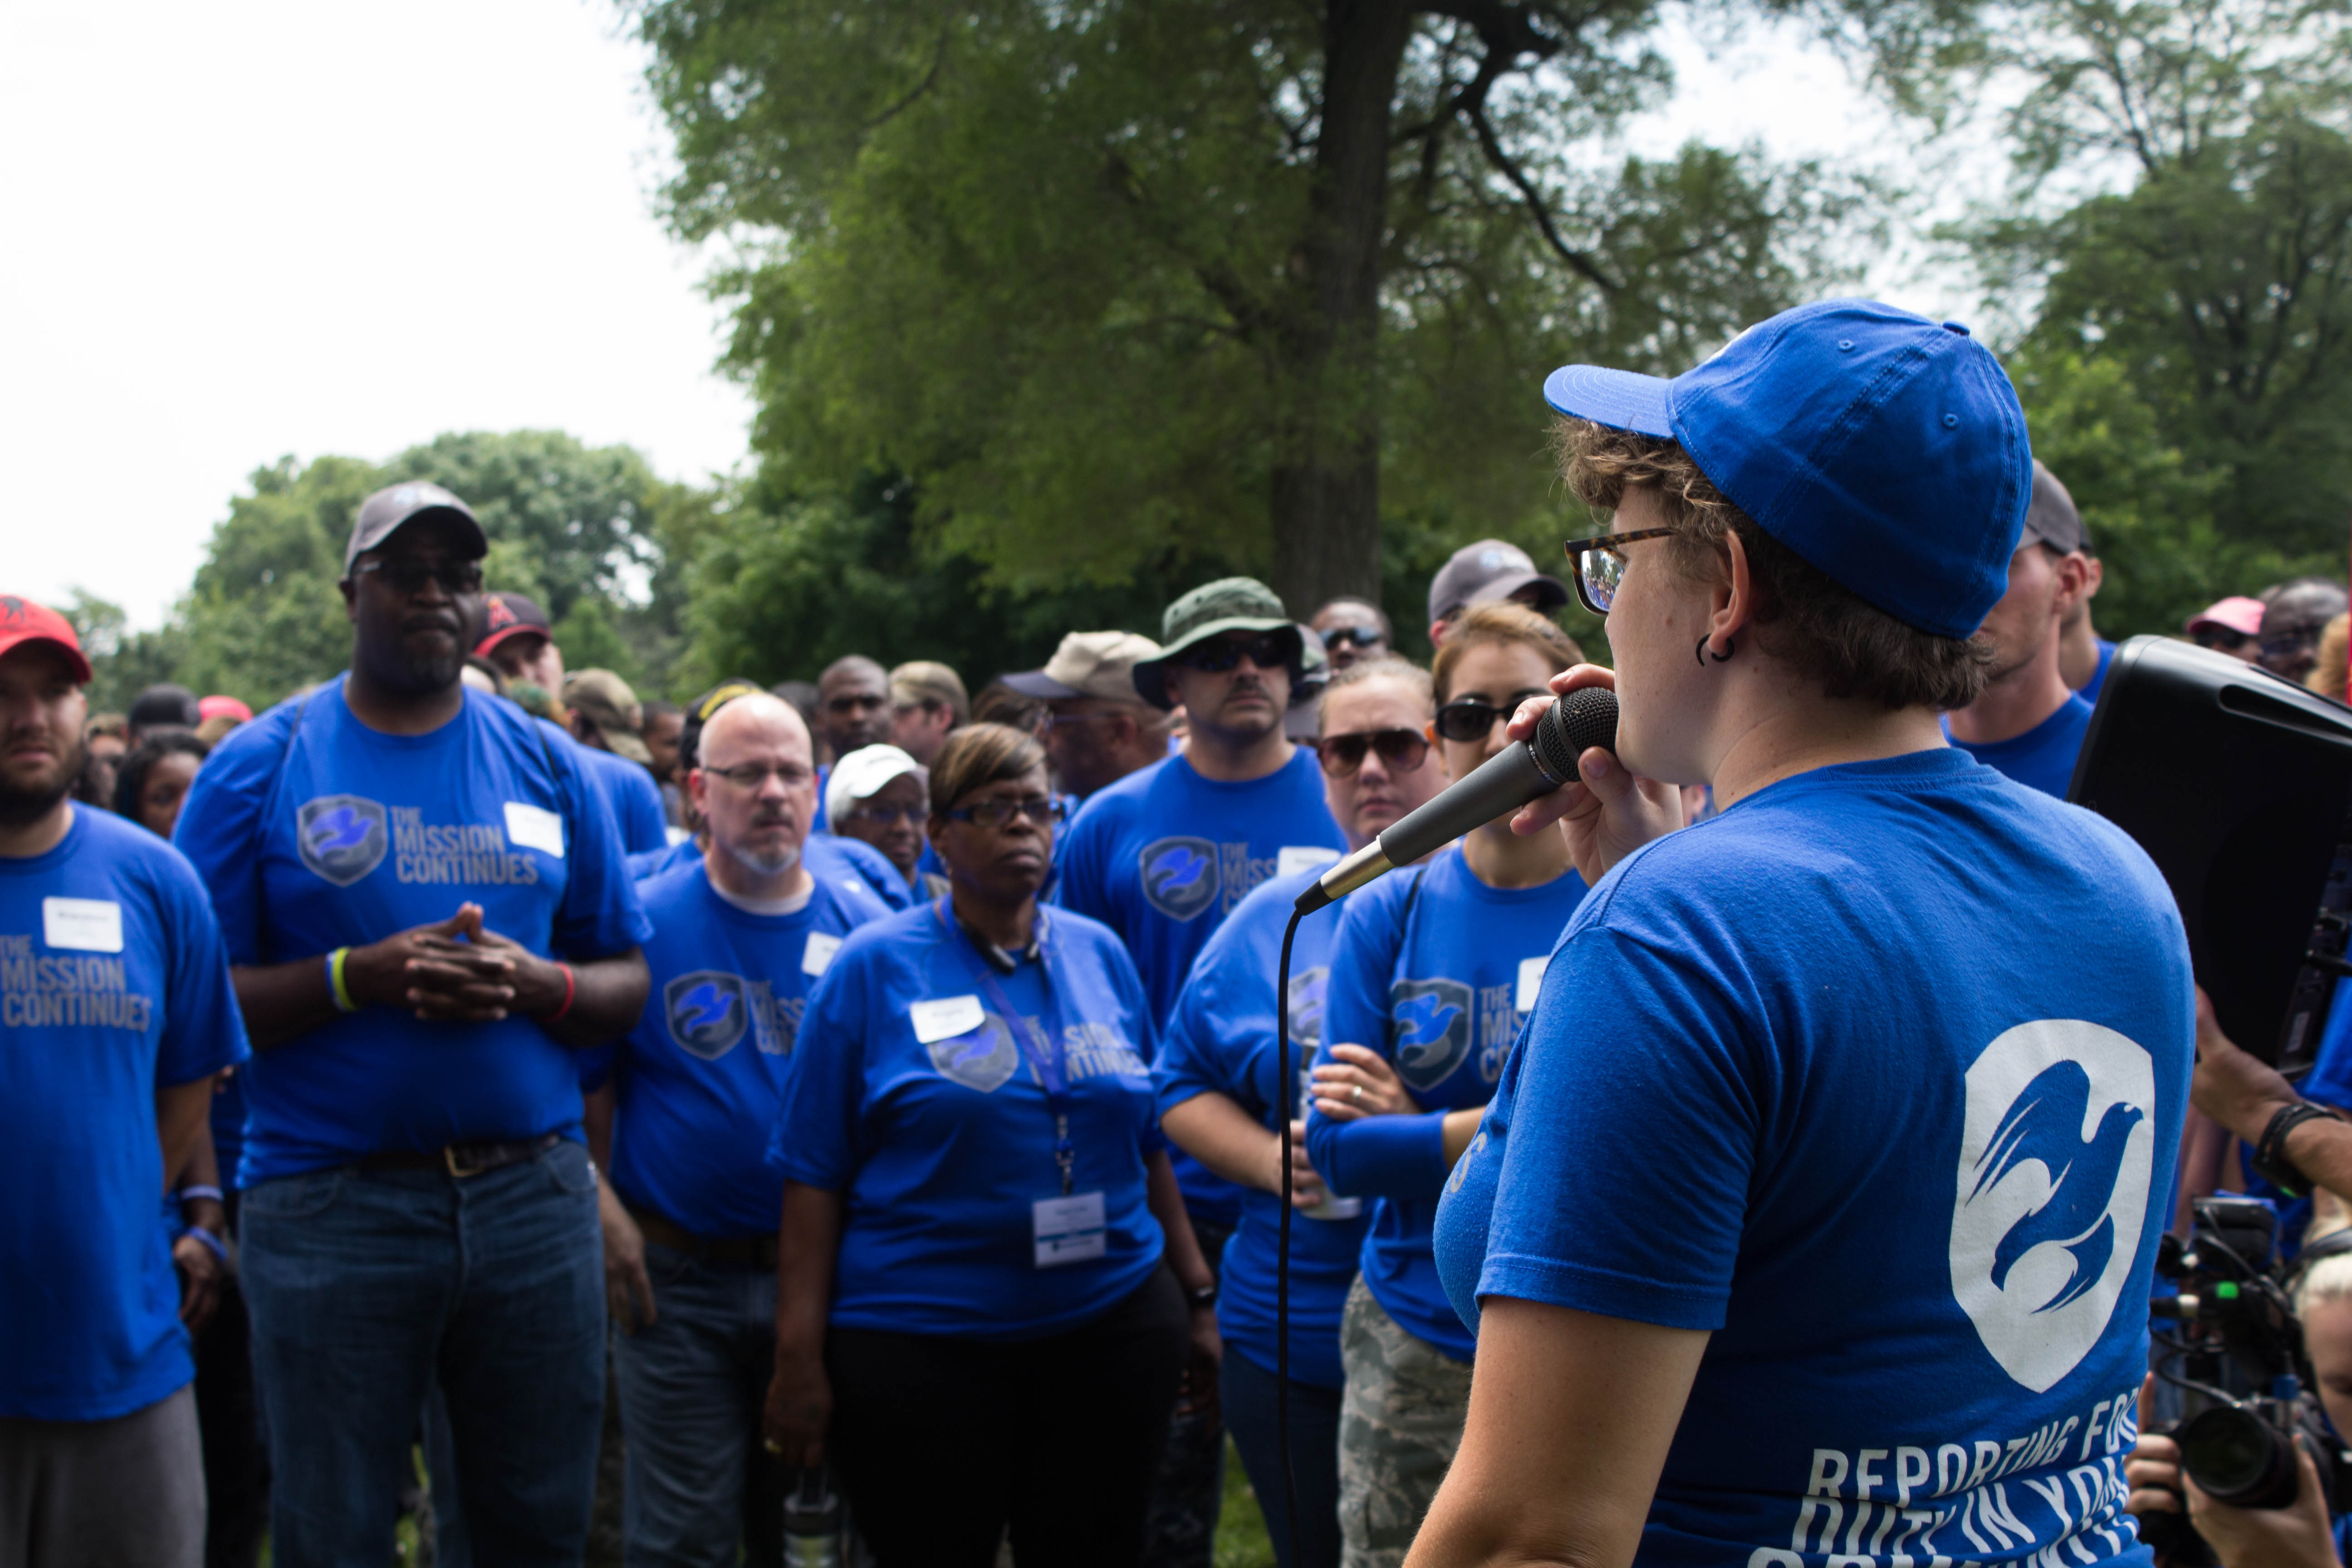 Jessica addresses volunteers at a service project,  July 2015.